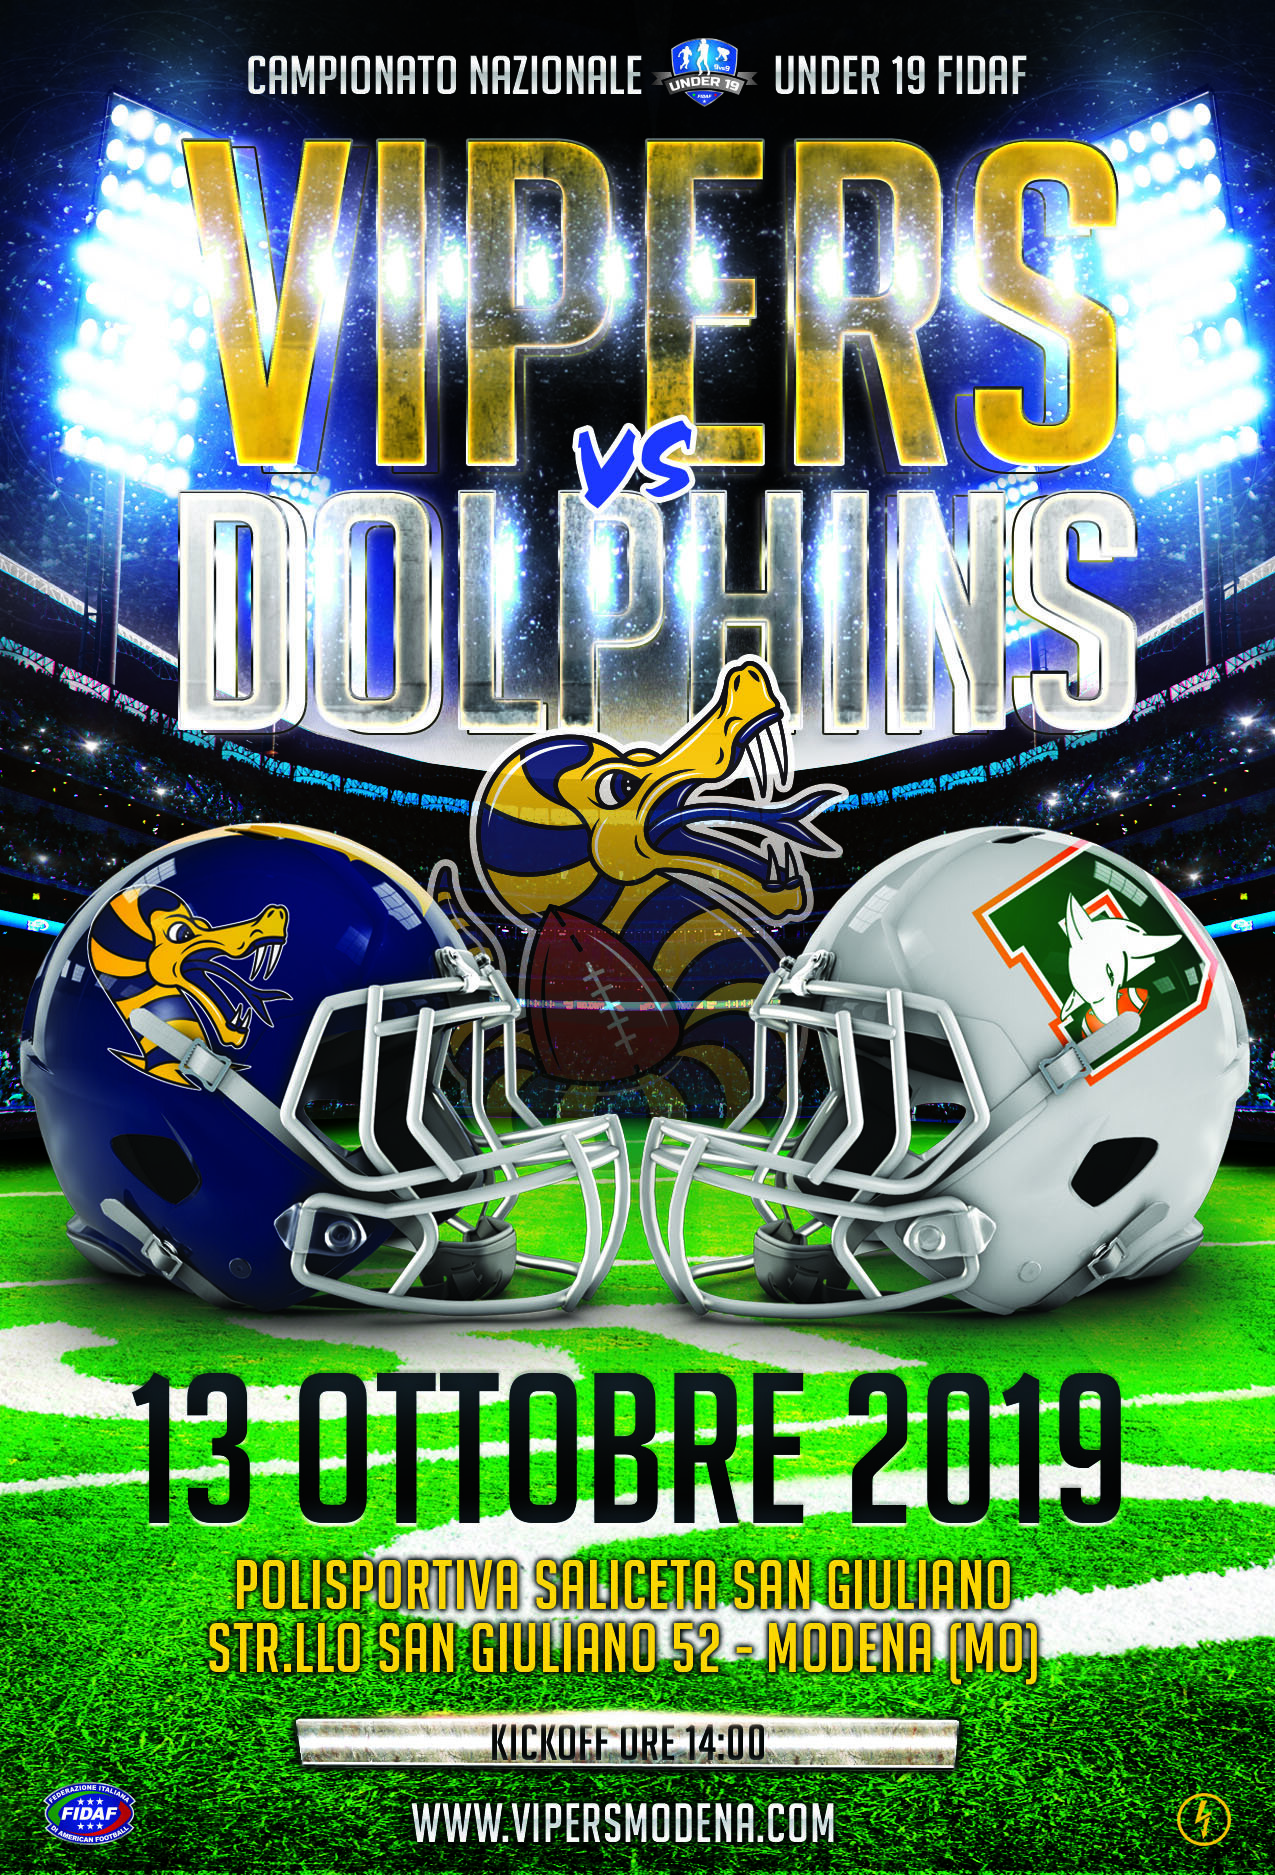 VIPERS-vs-DOLPHINS.jpg